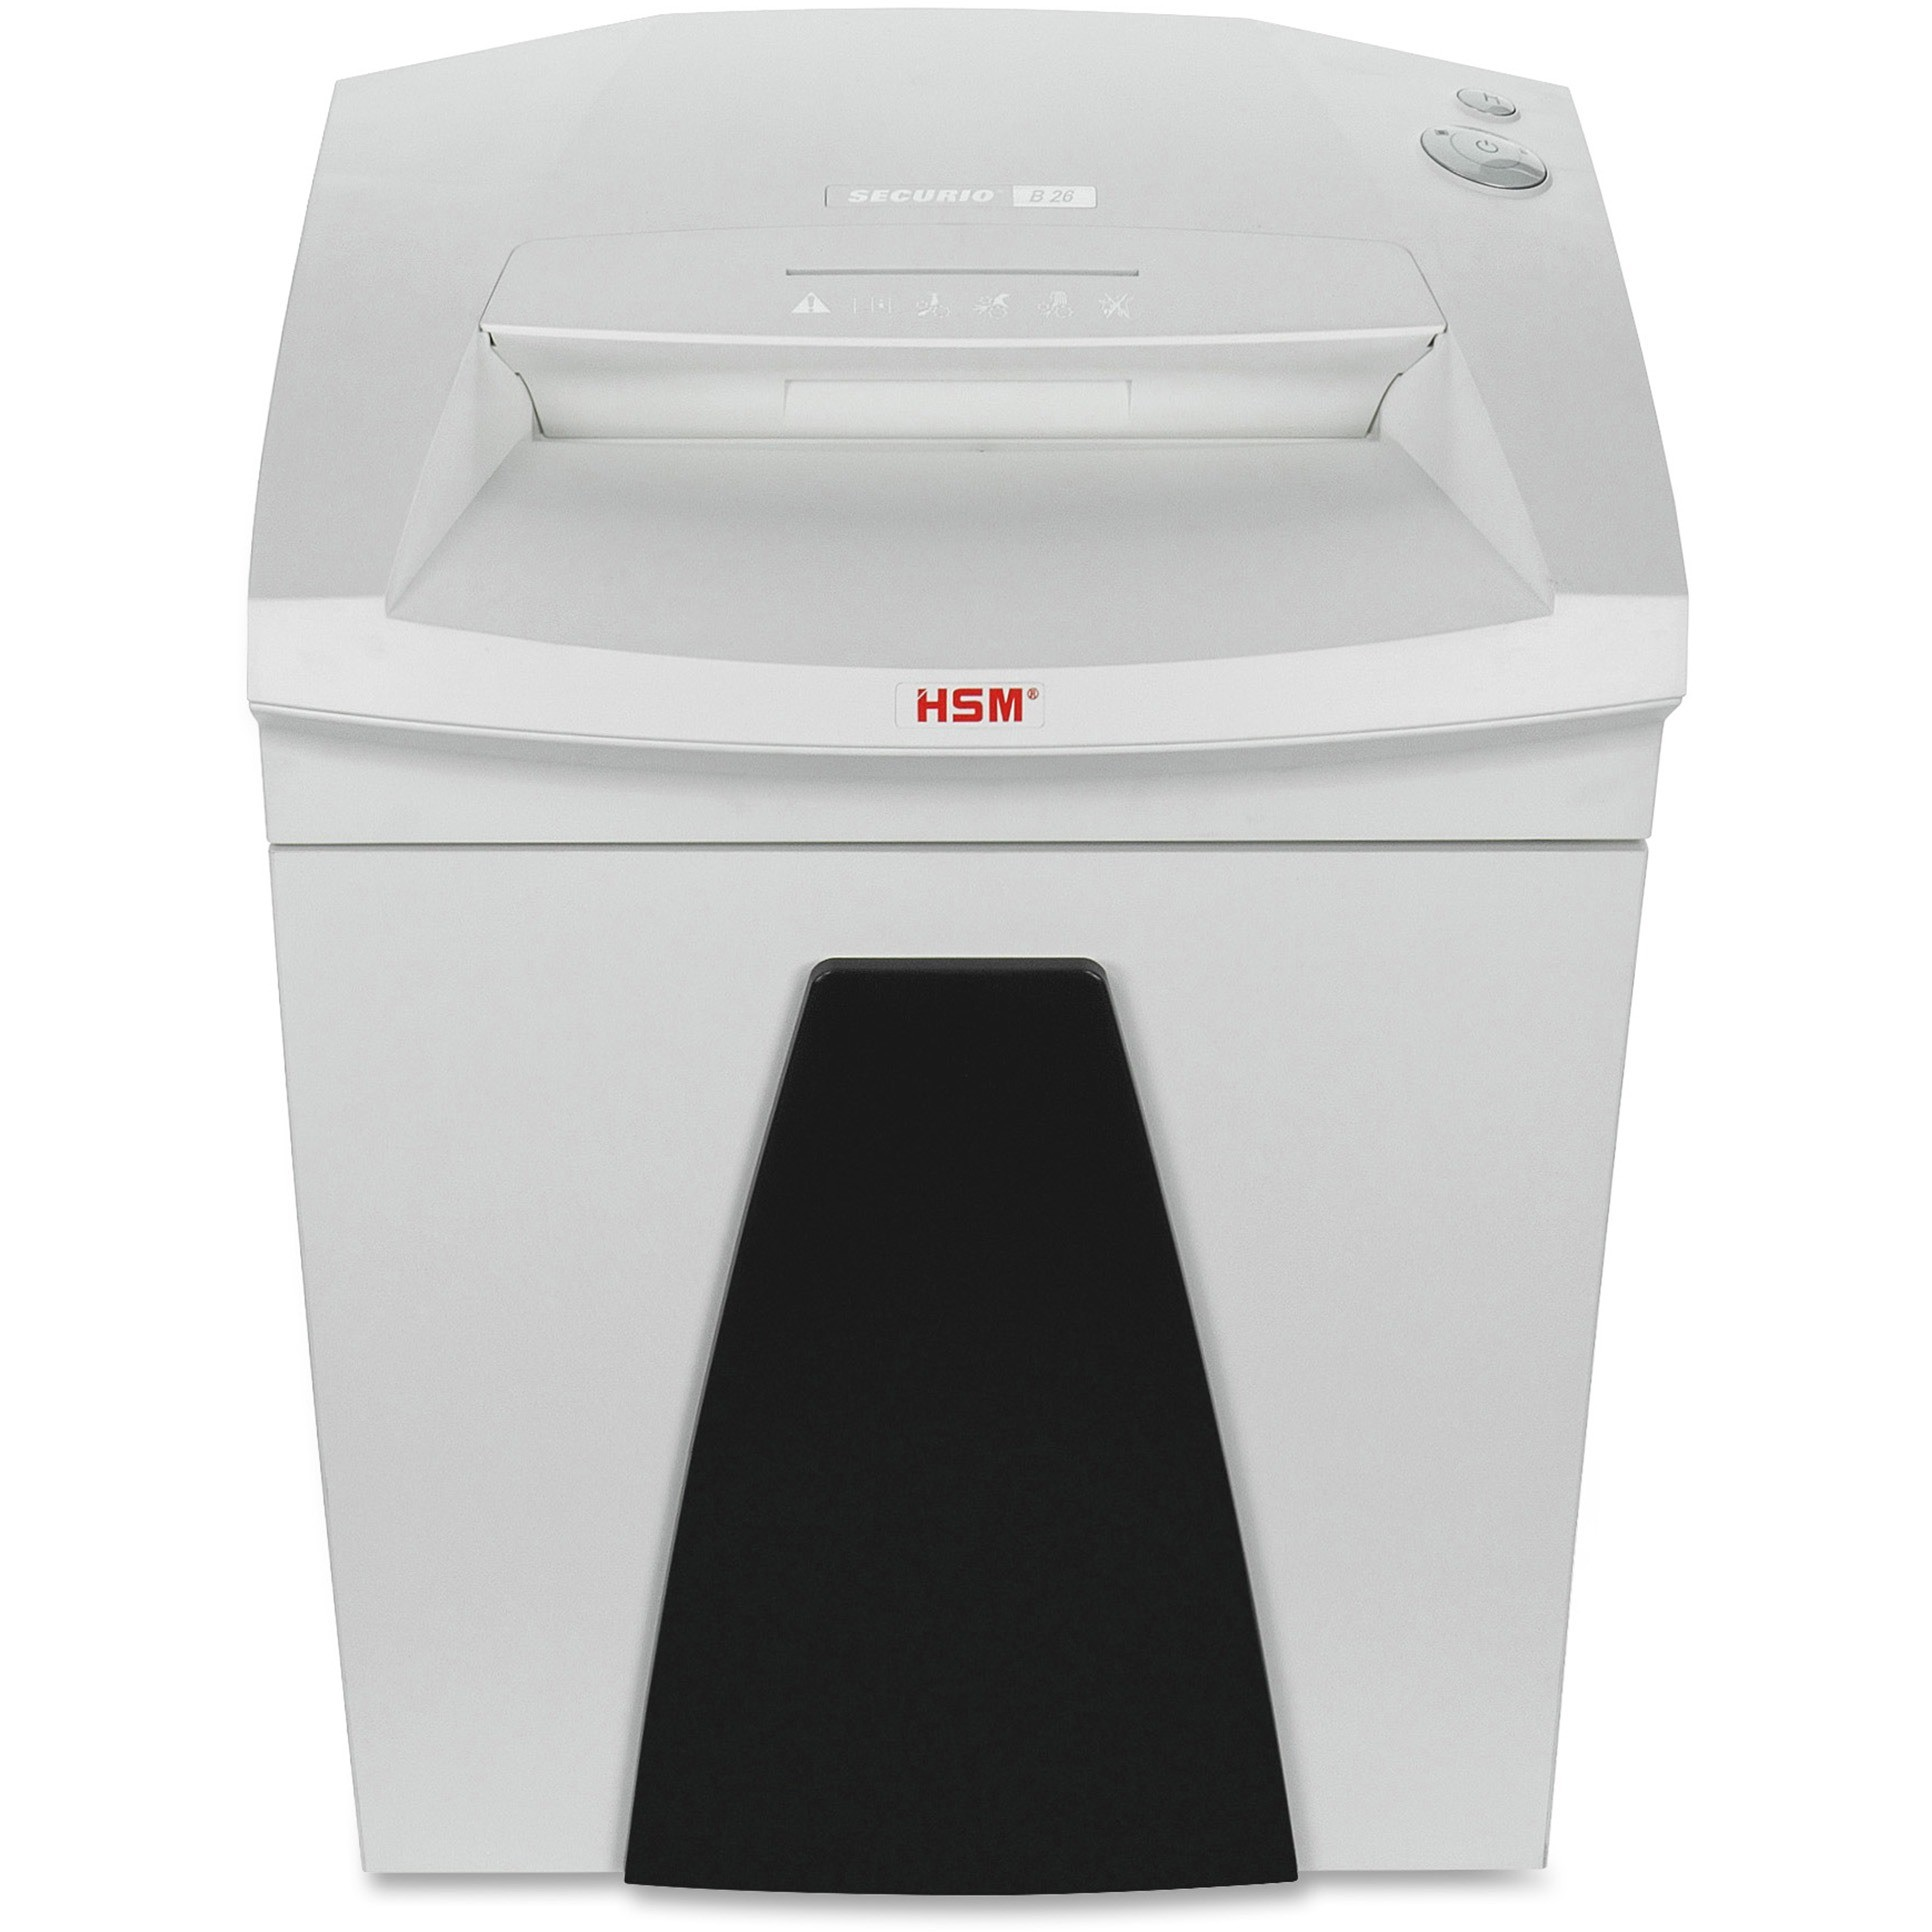 HSM1803 HSM SECURIO B26c Cross-Cut Shredder